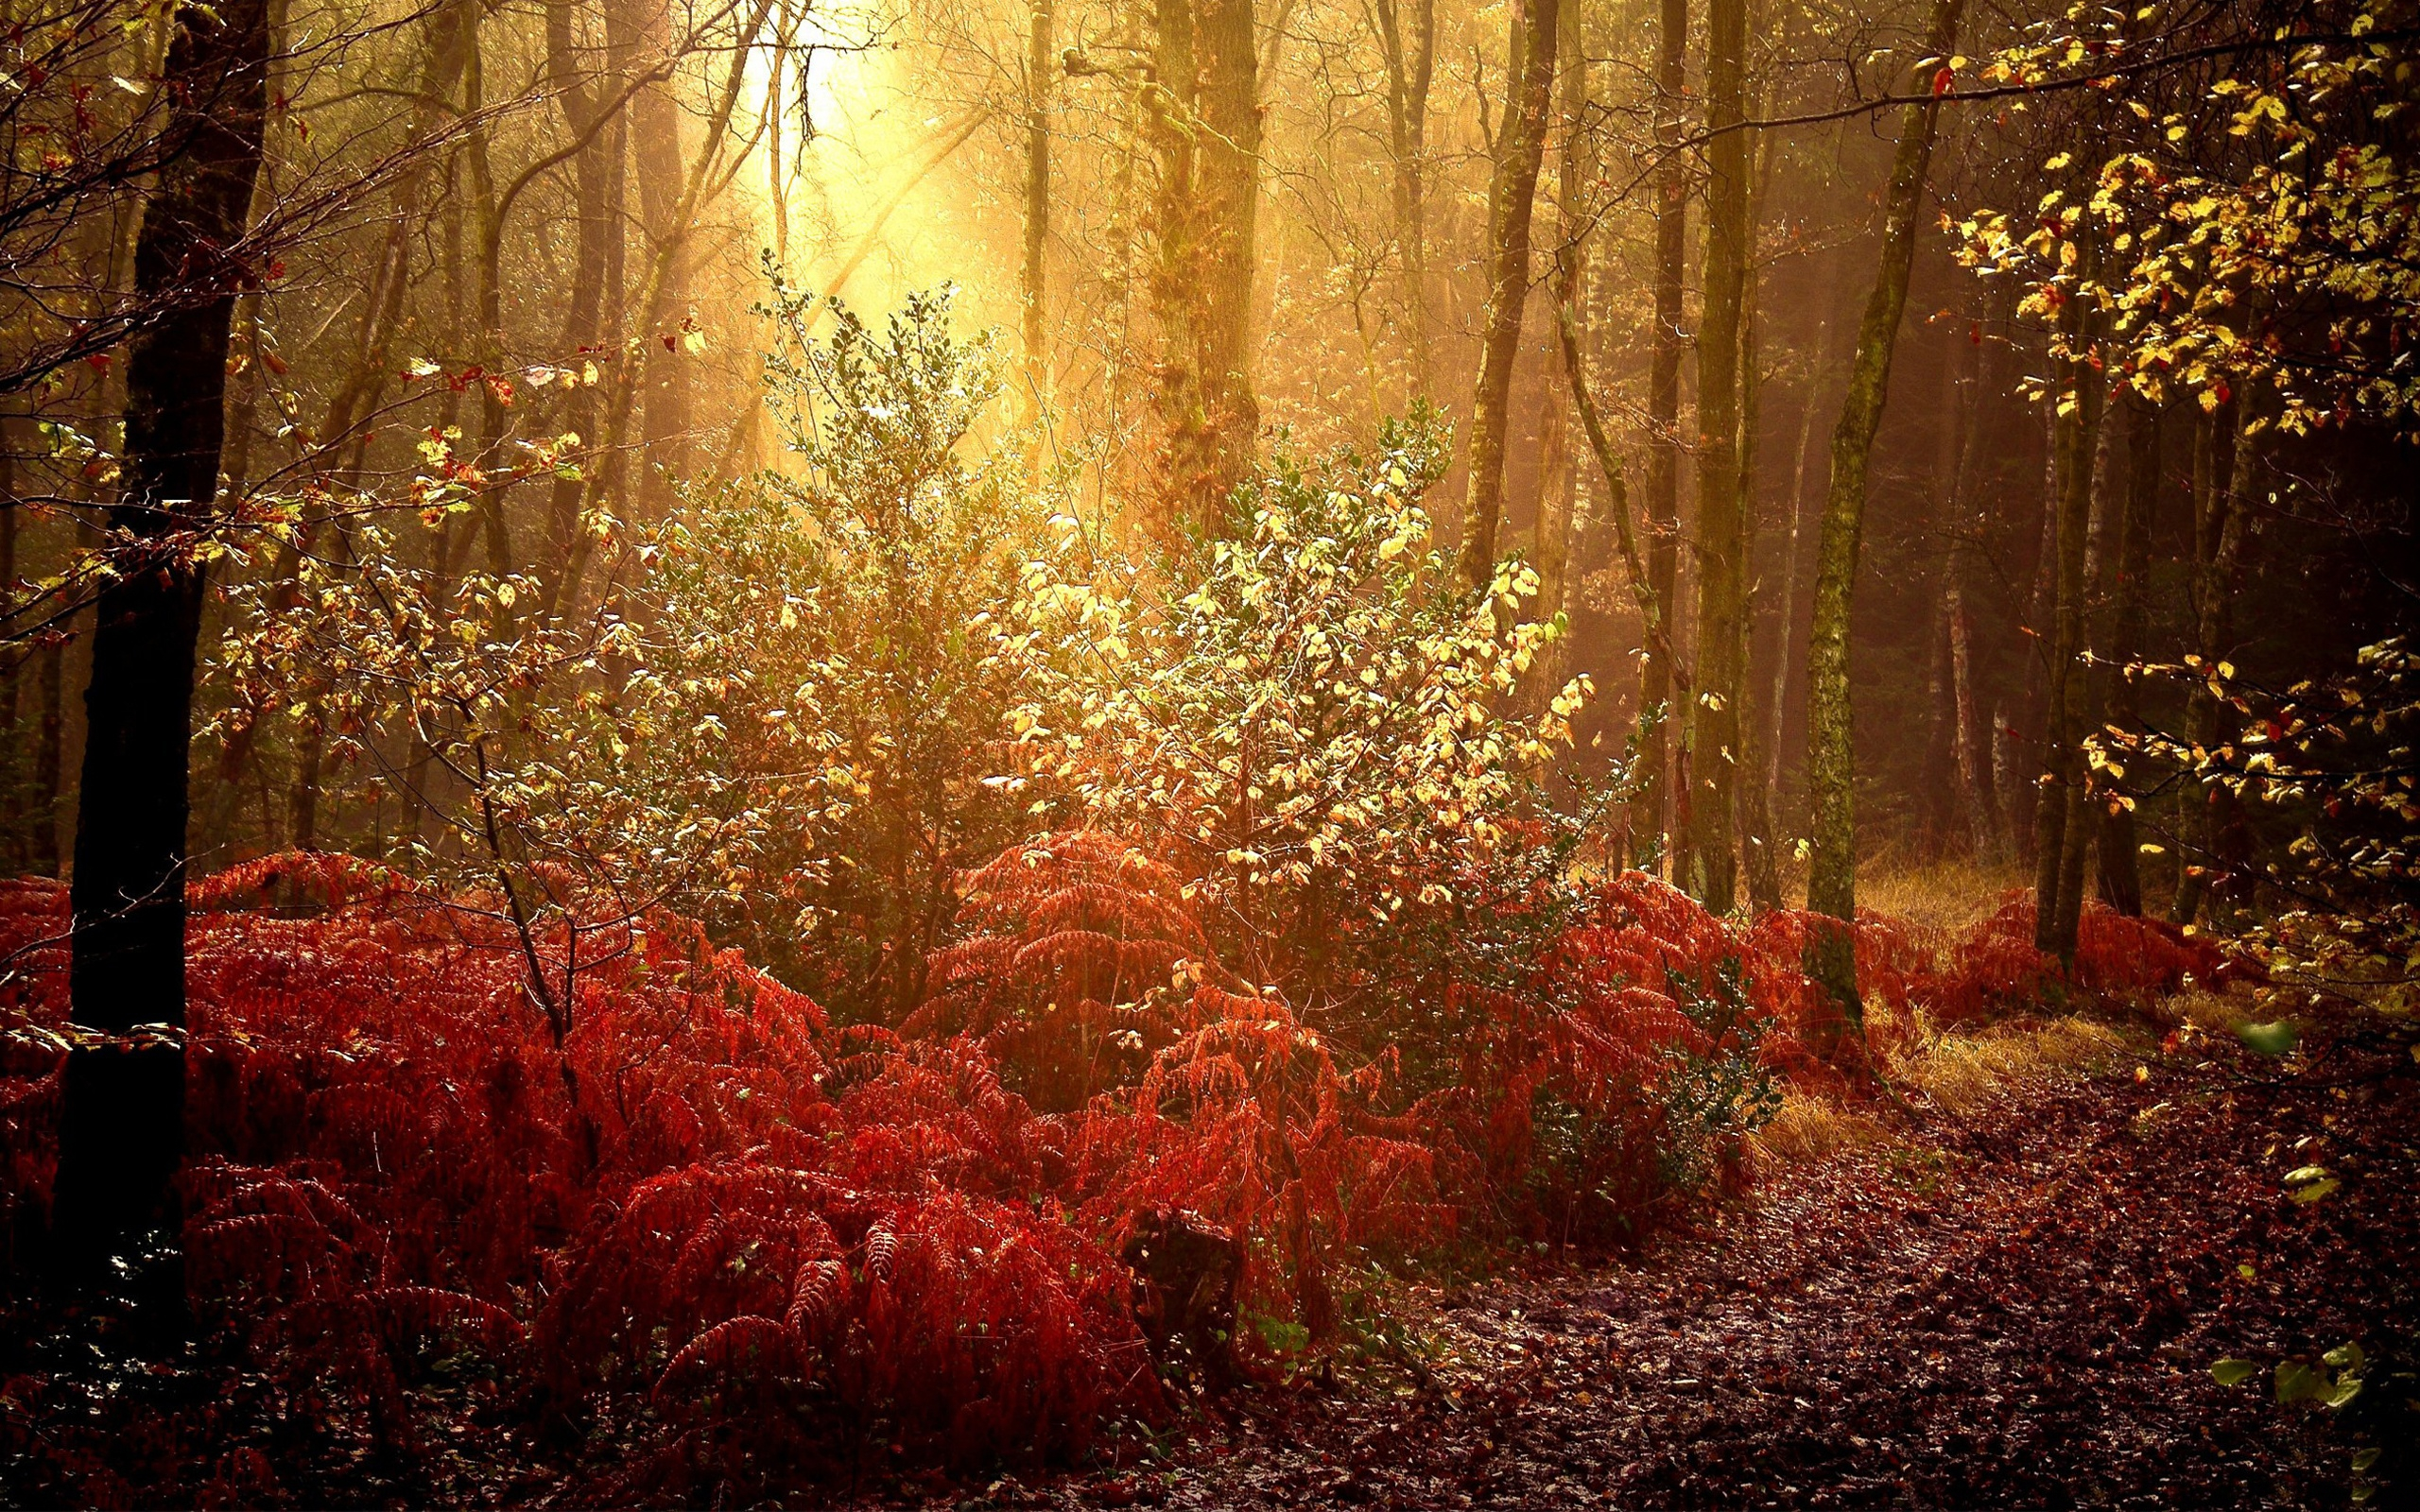 Mystical Fall Desktop Wallpaper Autumn Forest Wallpaper For Desktop Pixelstalk Net